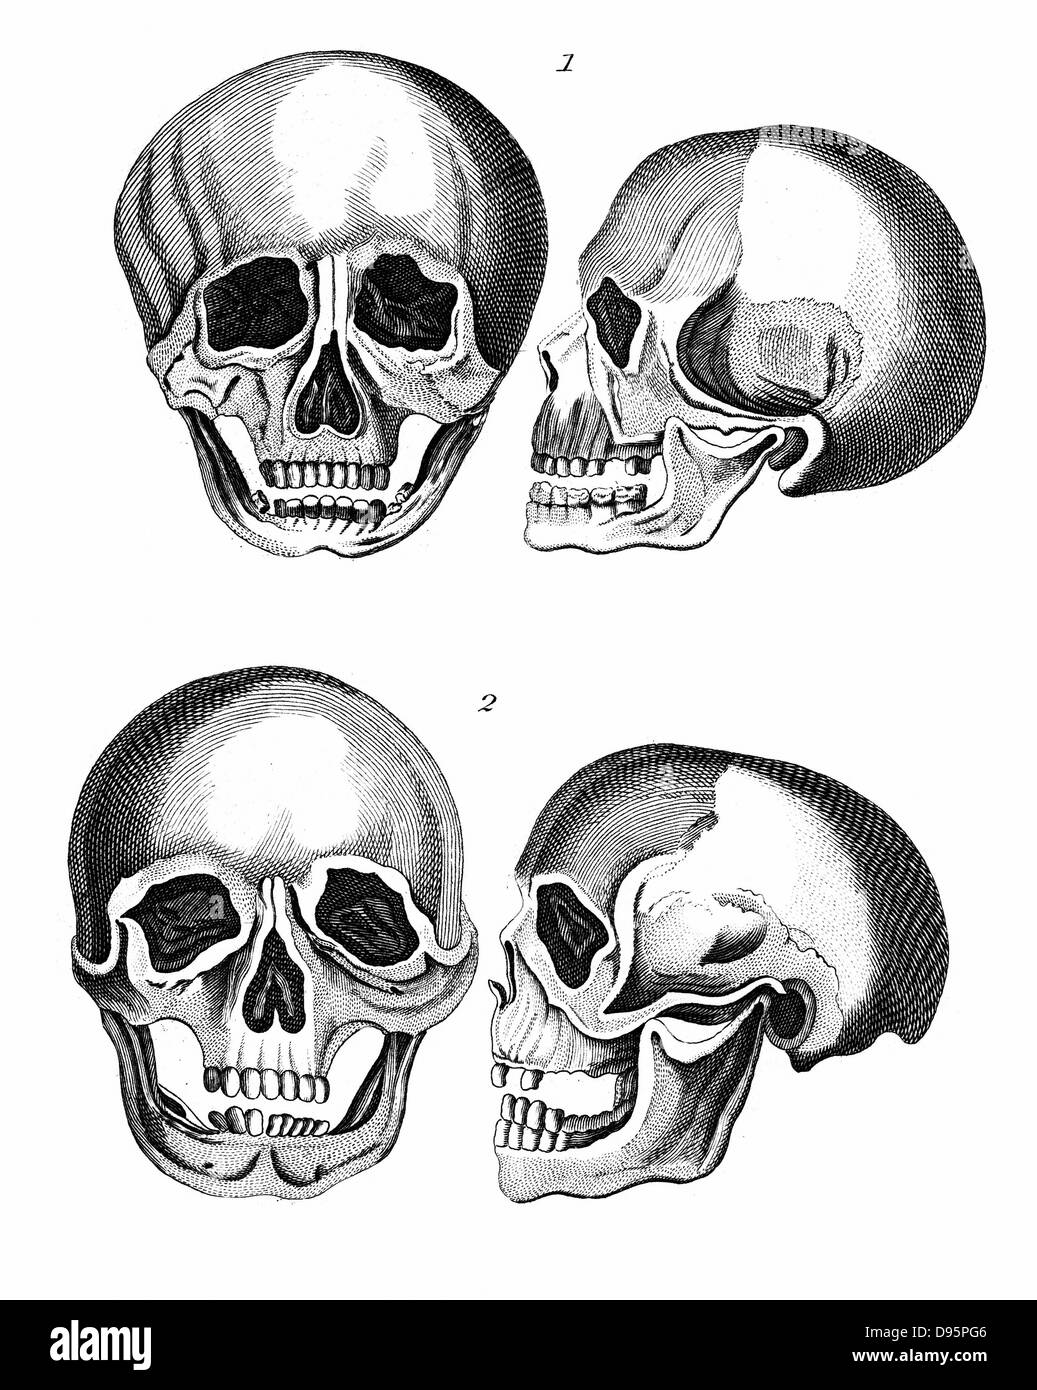 1: Germanic skull 'with all the marks of a European head'. 2: African skull: 'The arching of the forehead - Stock Image